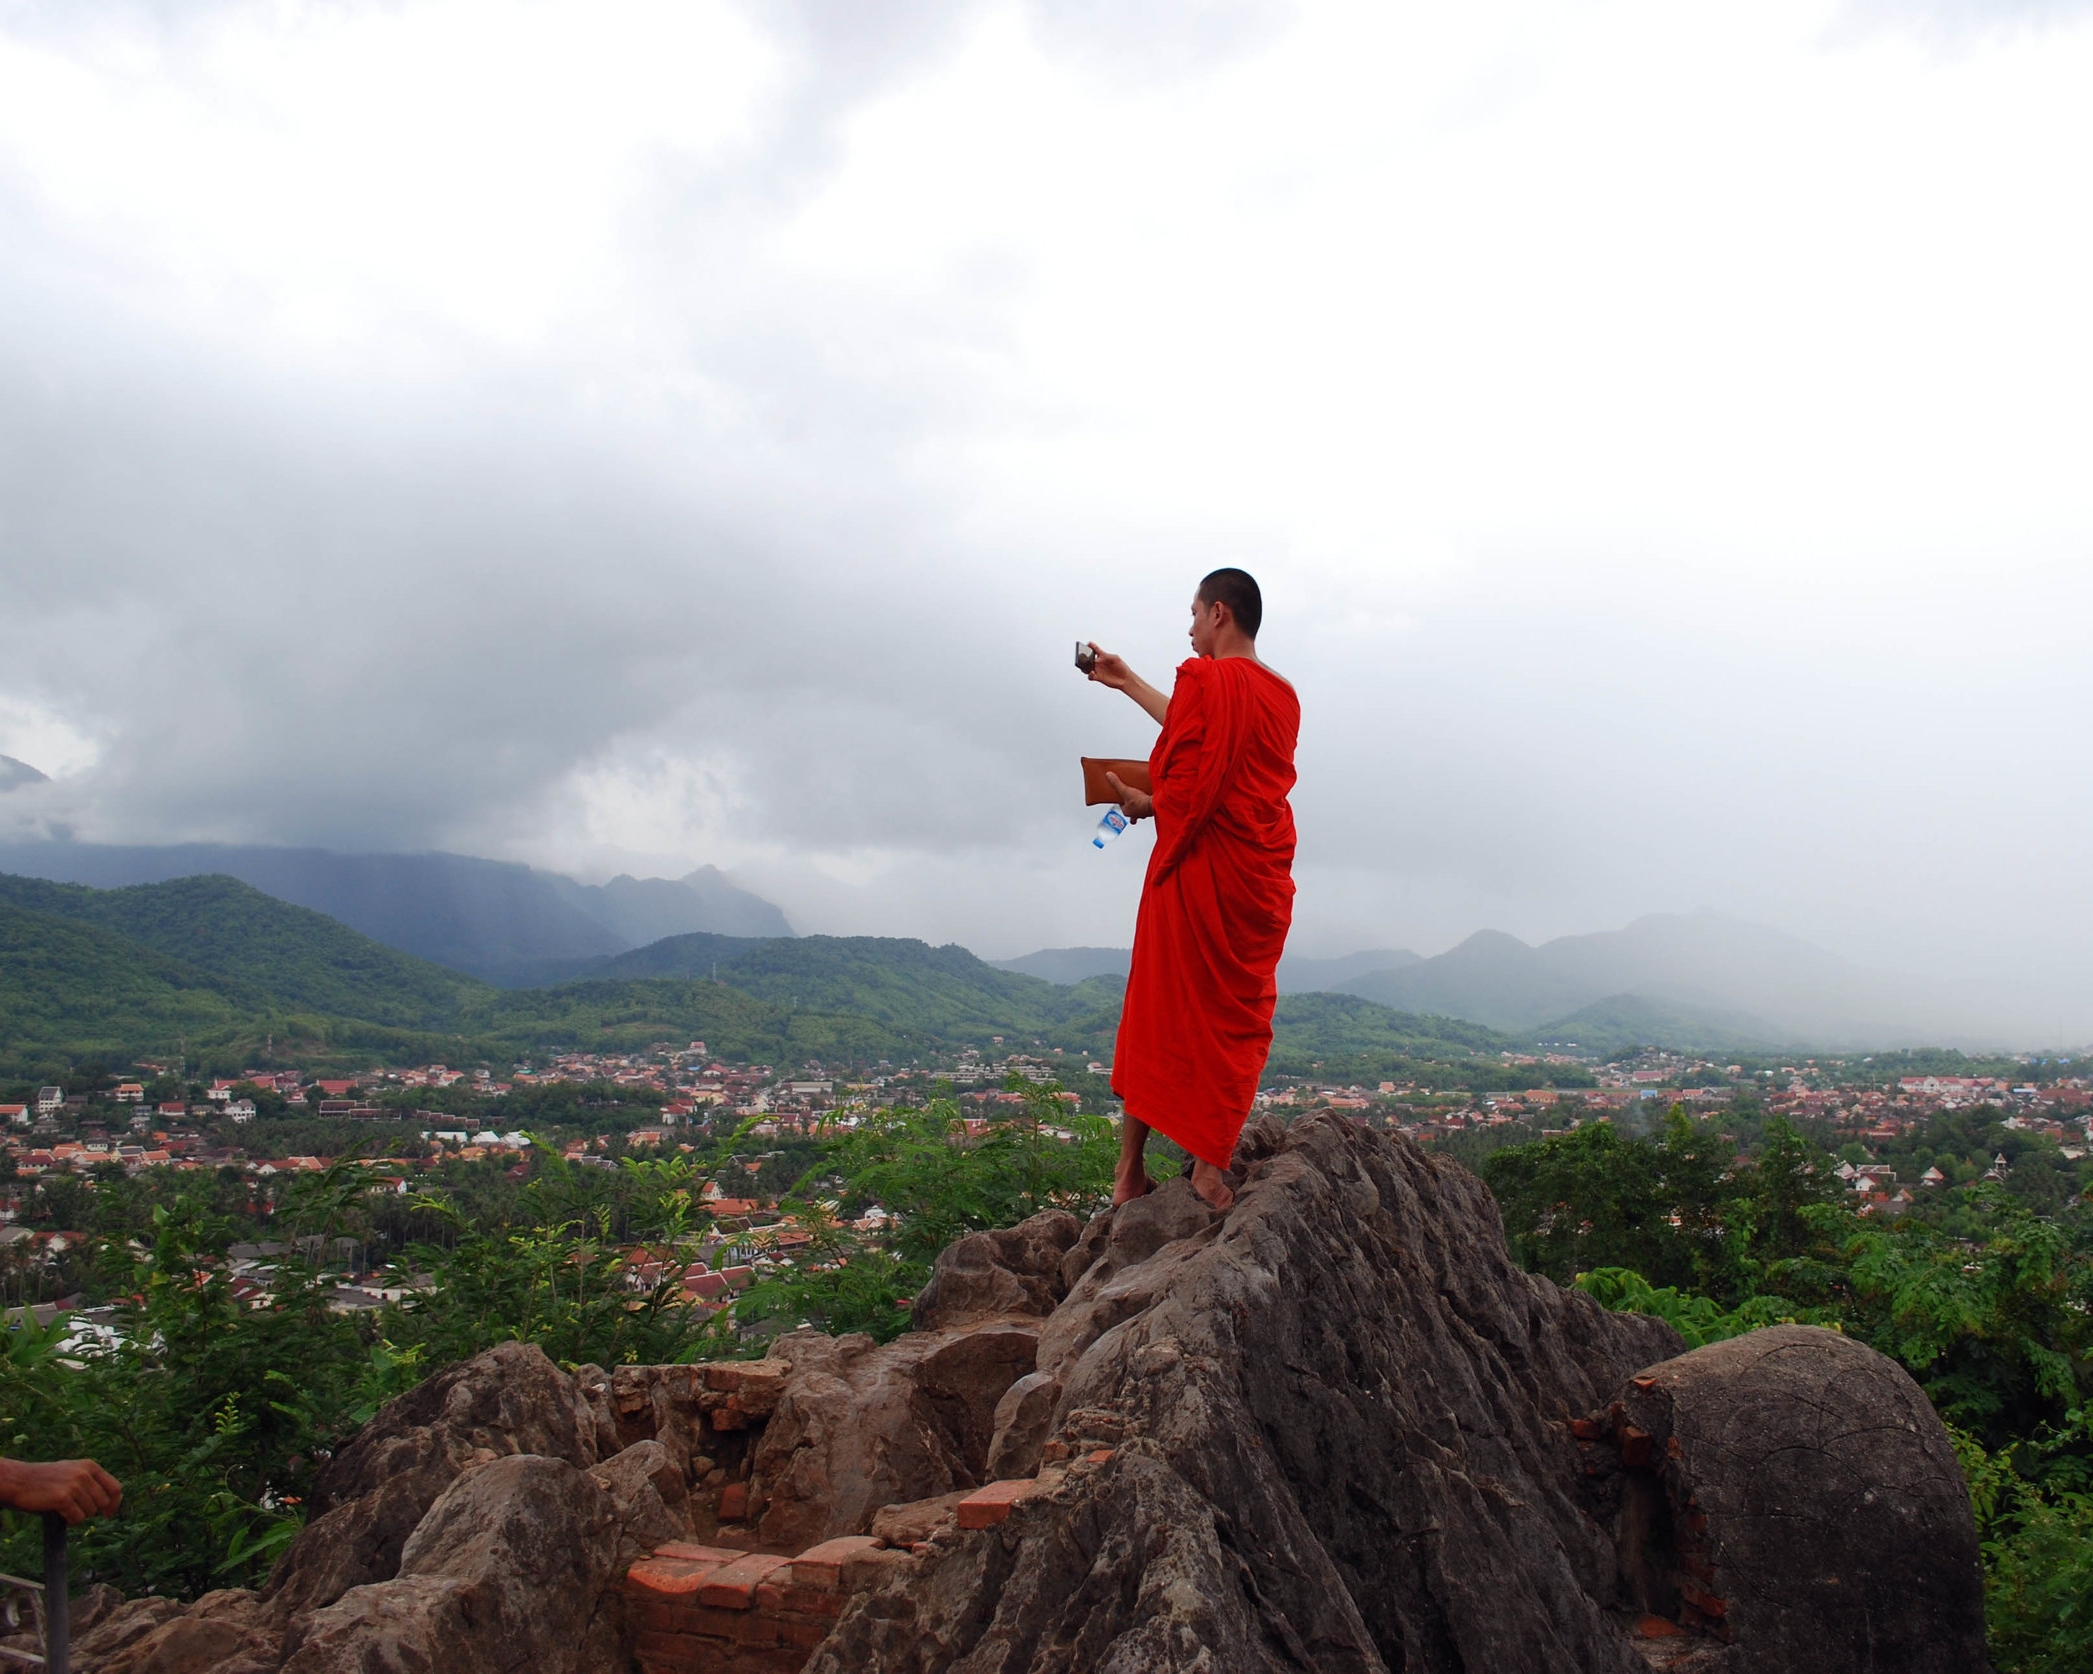 Monk at the top of Mount Phousi